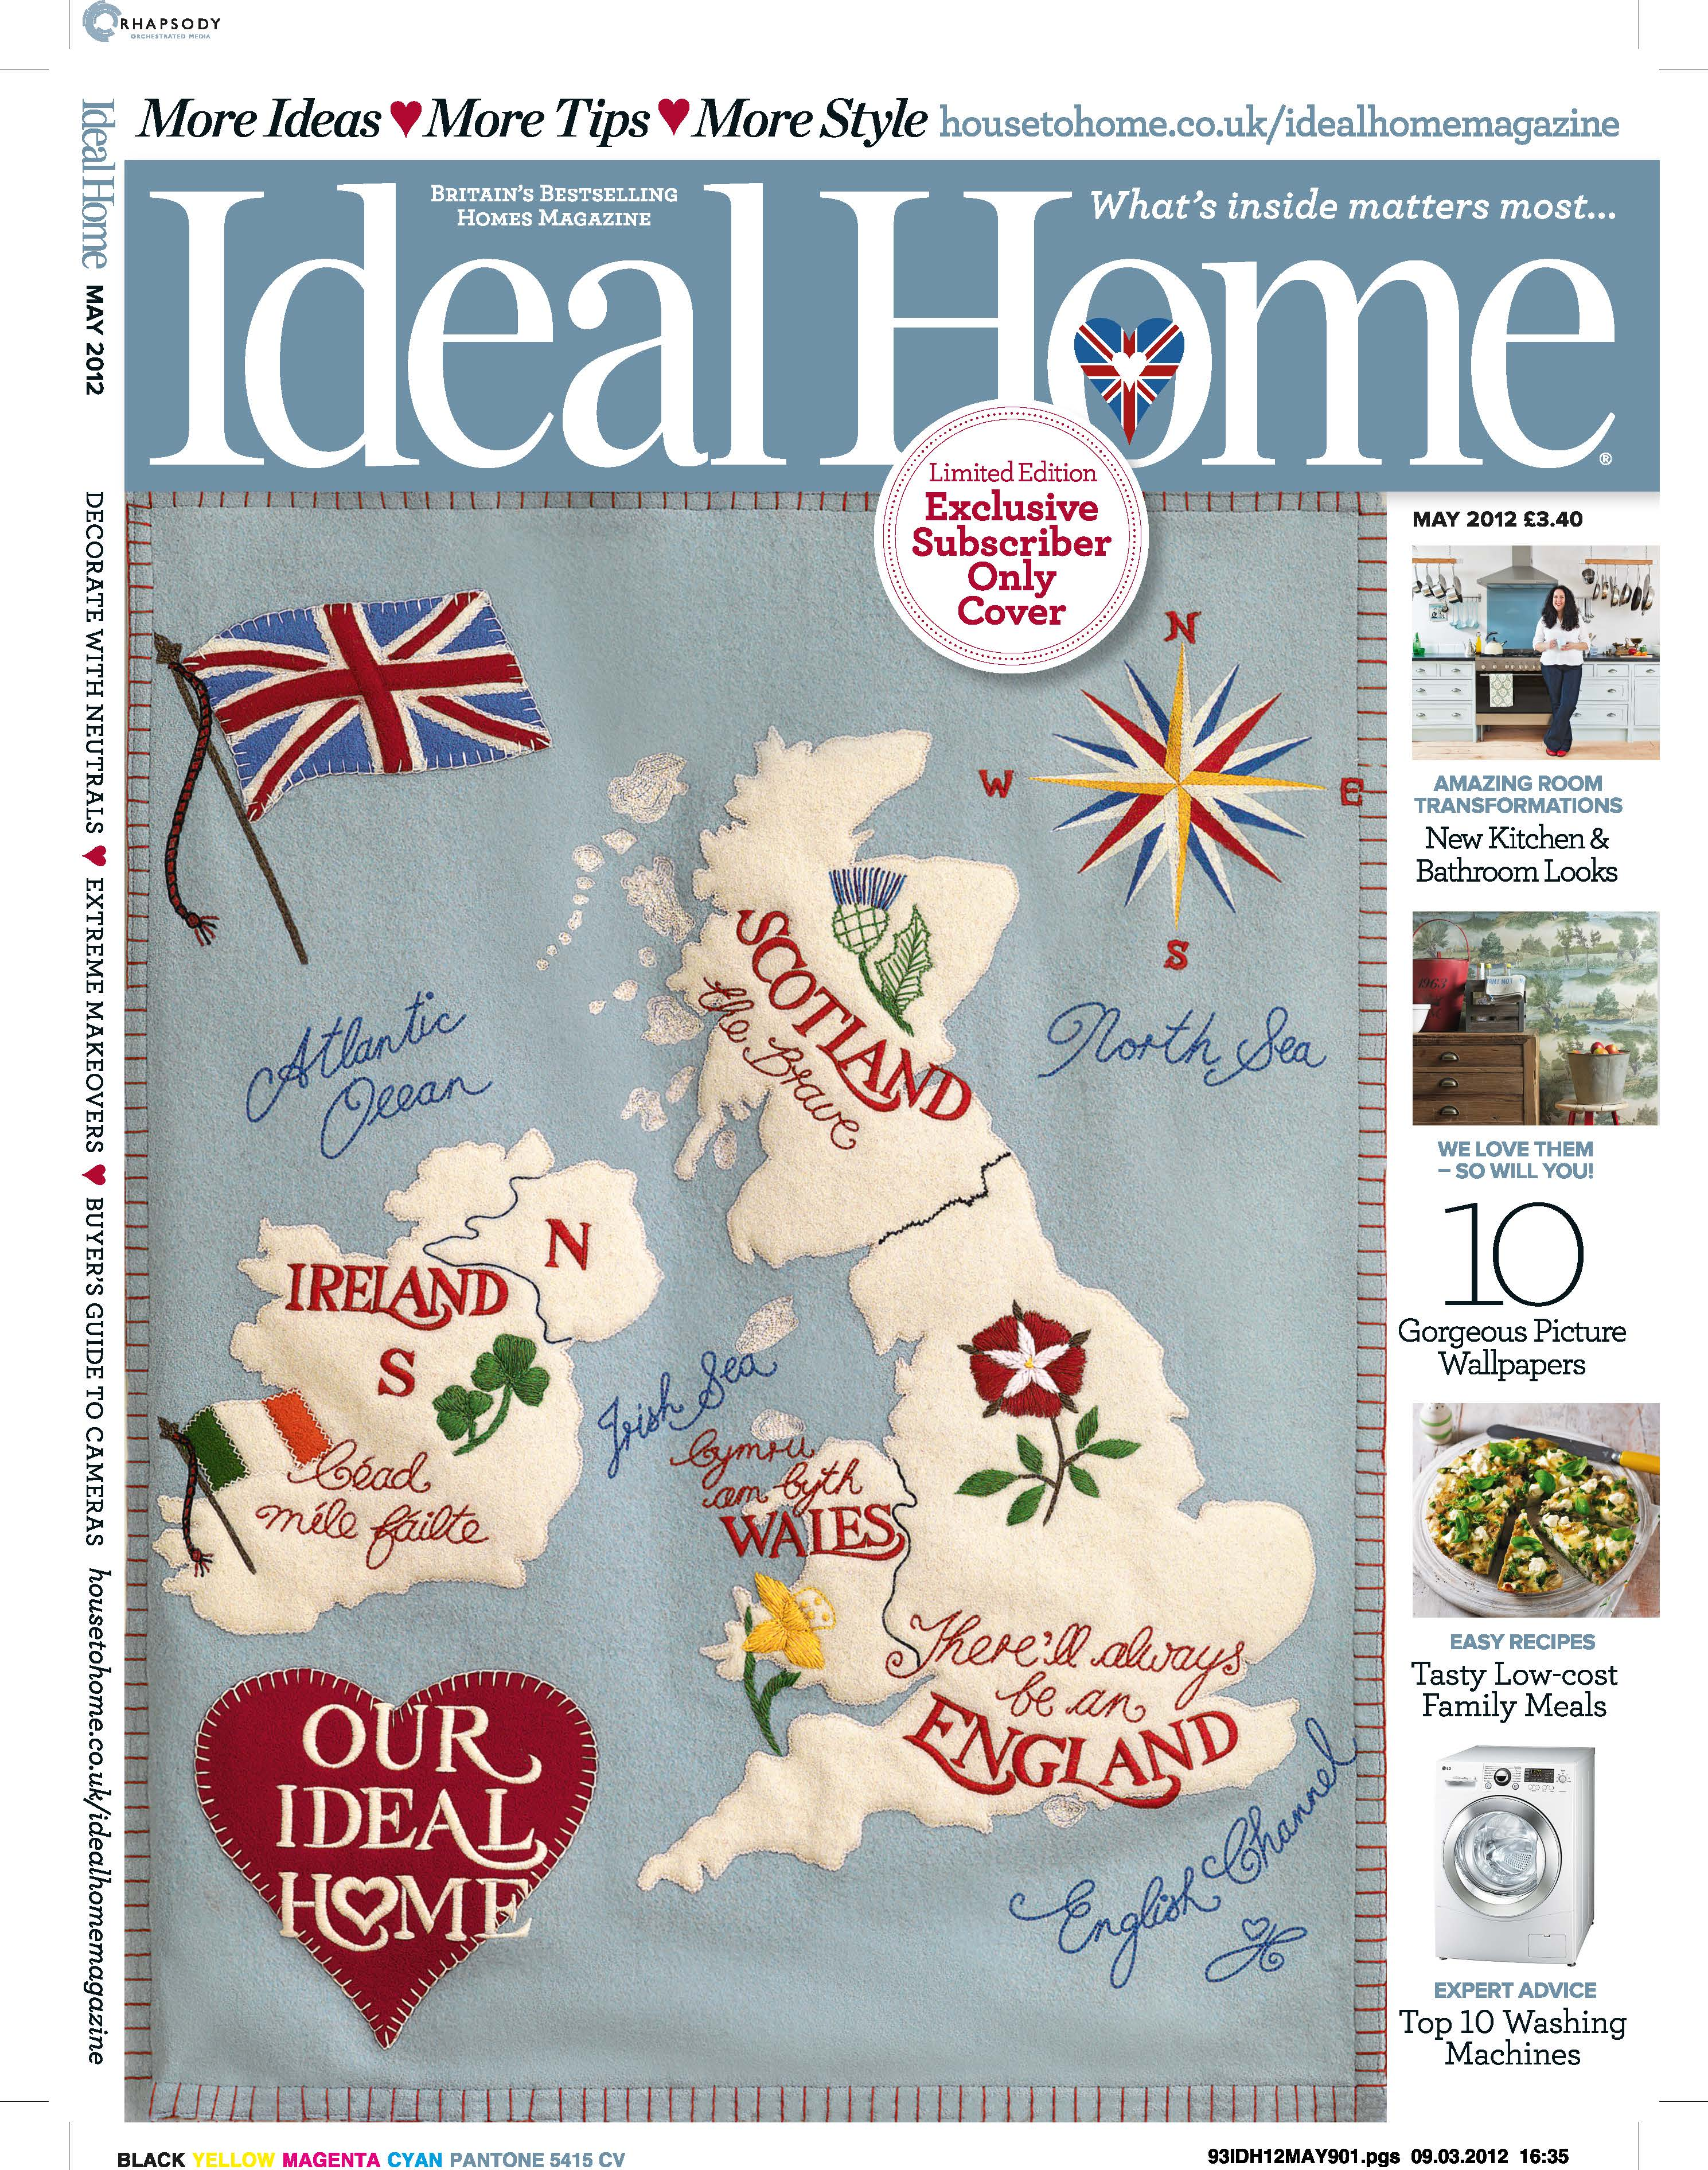 replace-ideal-home-may-12.jpg